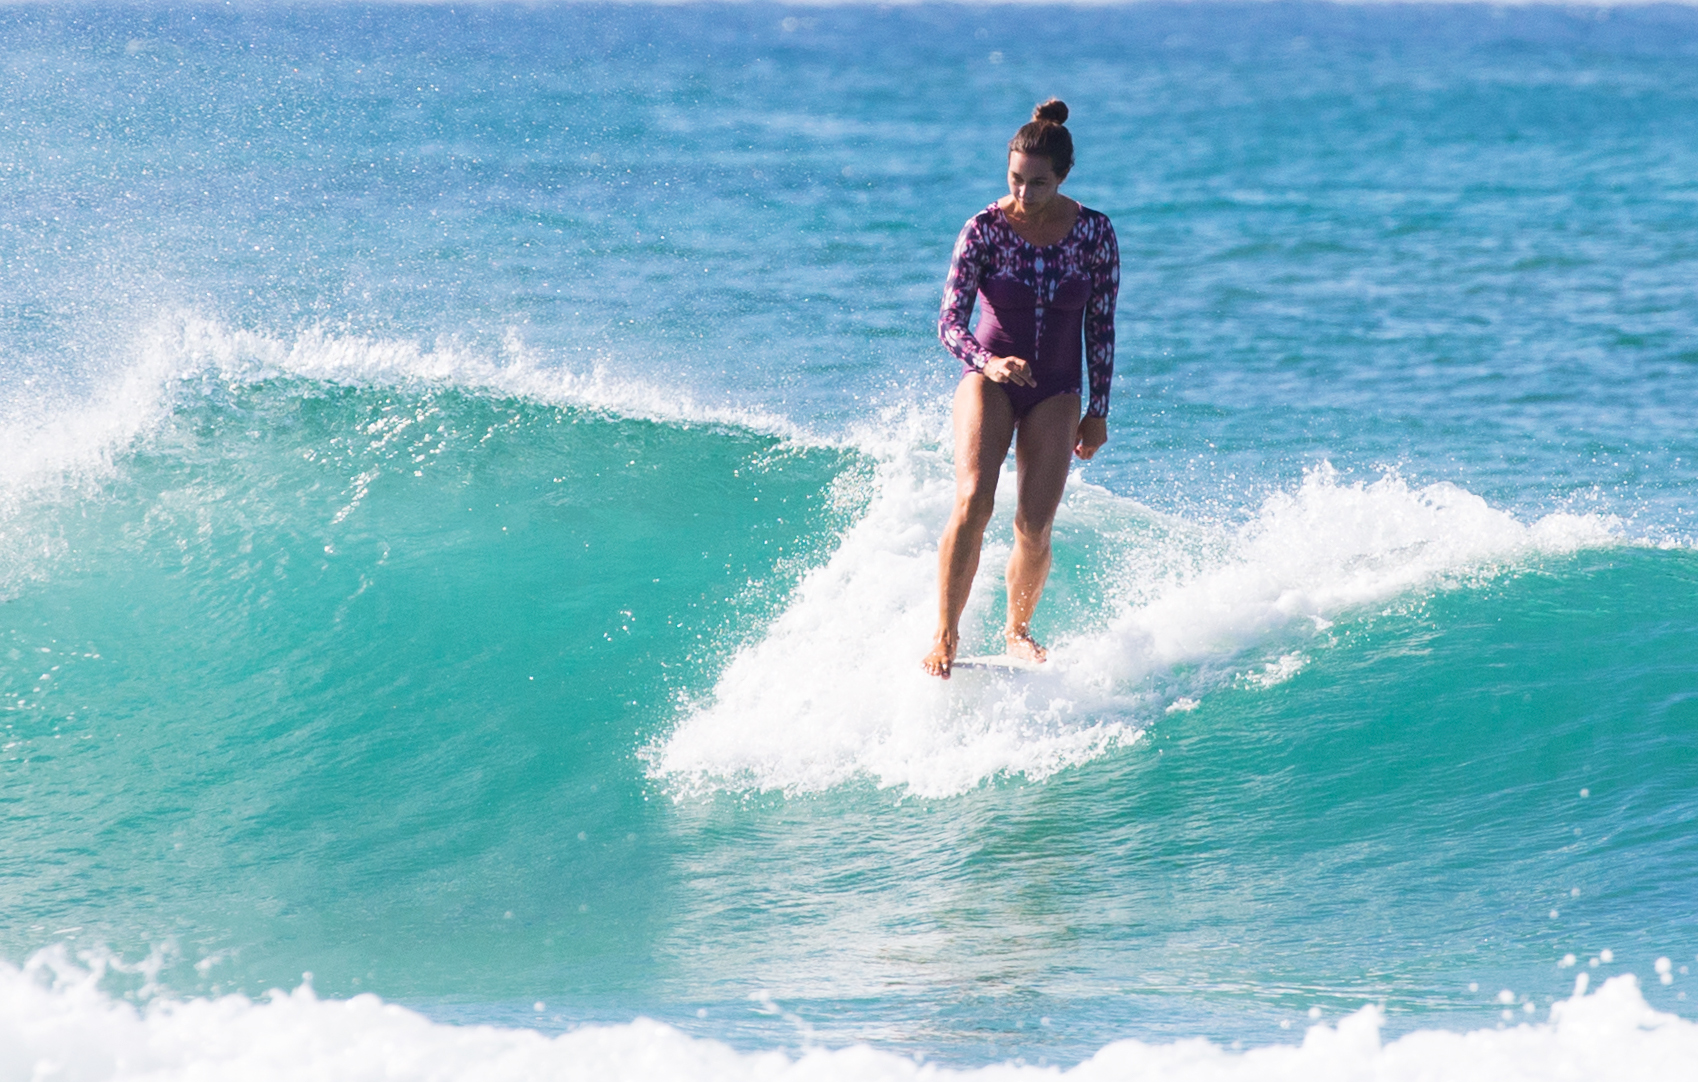 Rocking the Lafitenia Surfsuit -Photo by Michael Spazz